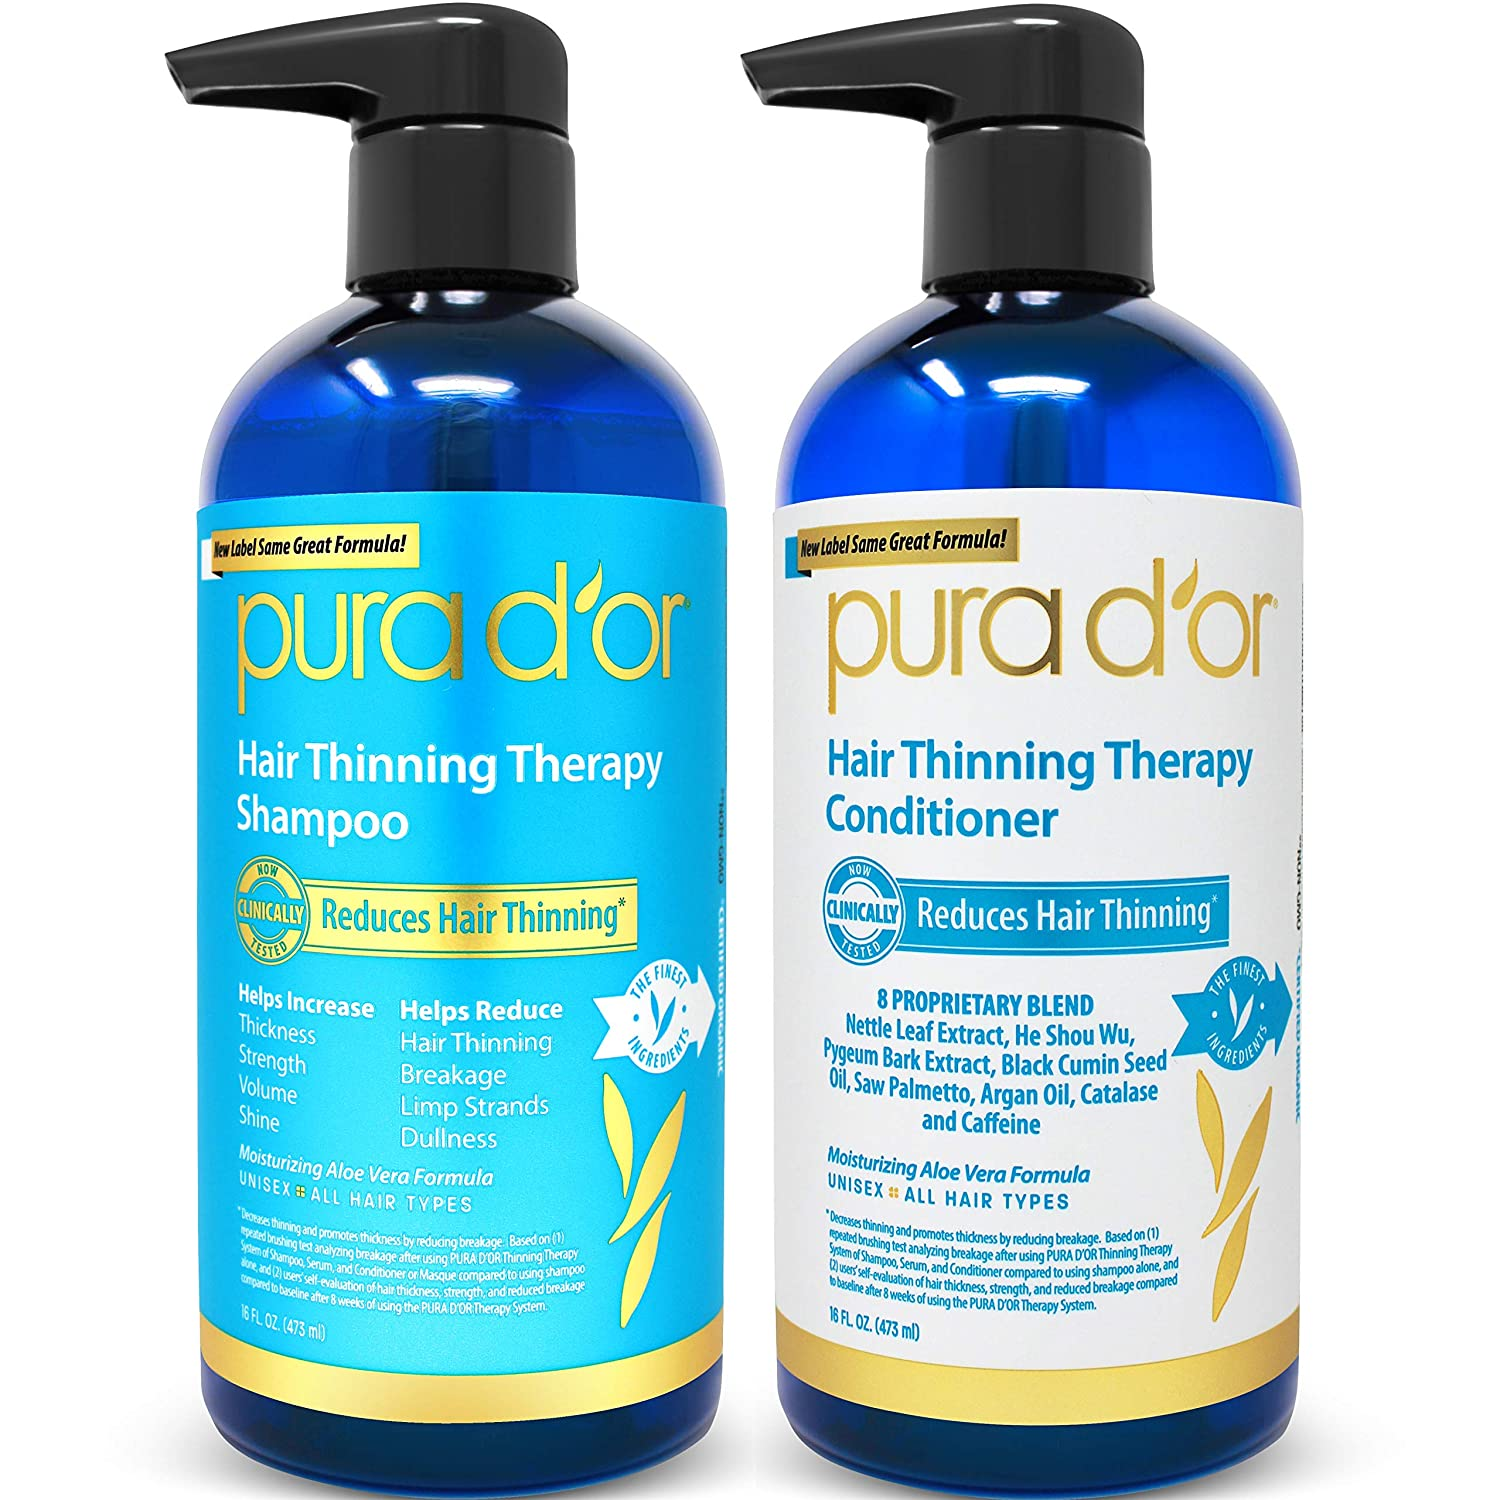 PURA D'OR Hair Thinning Therapy System